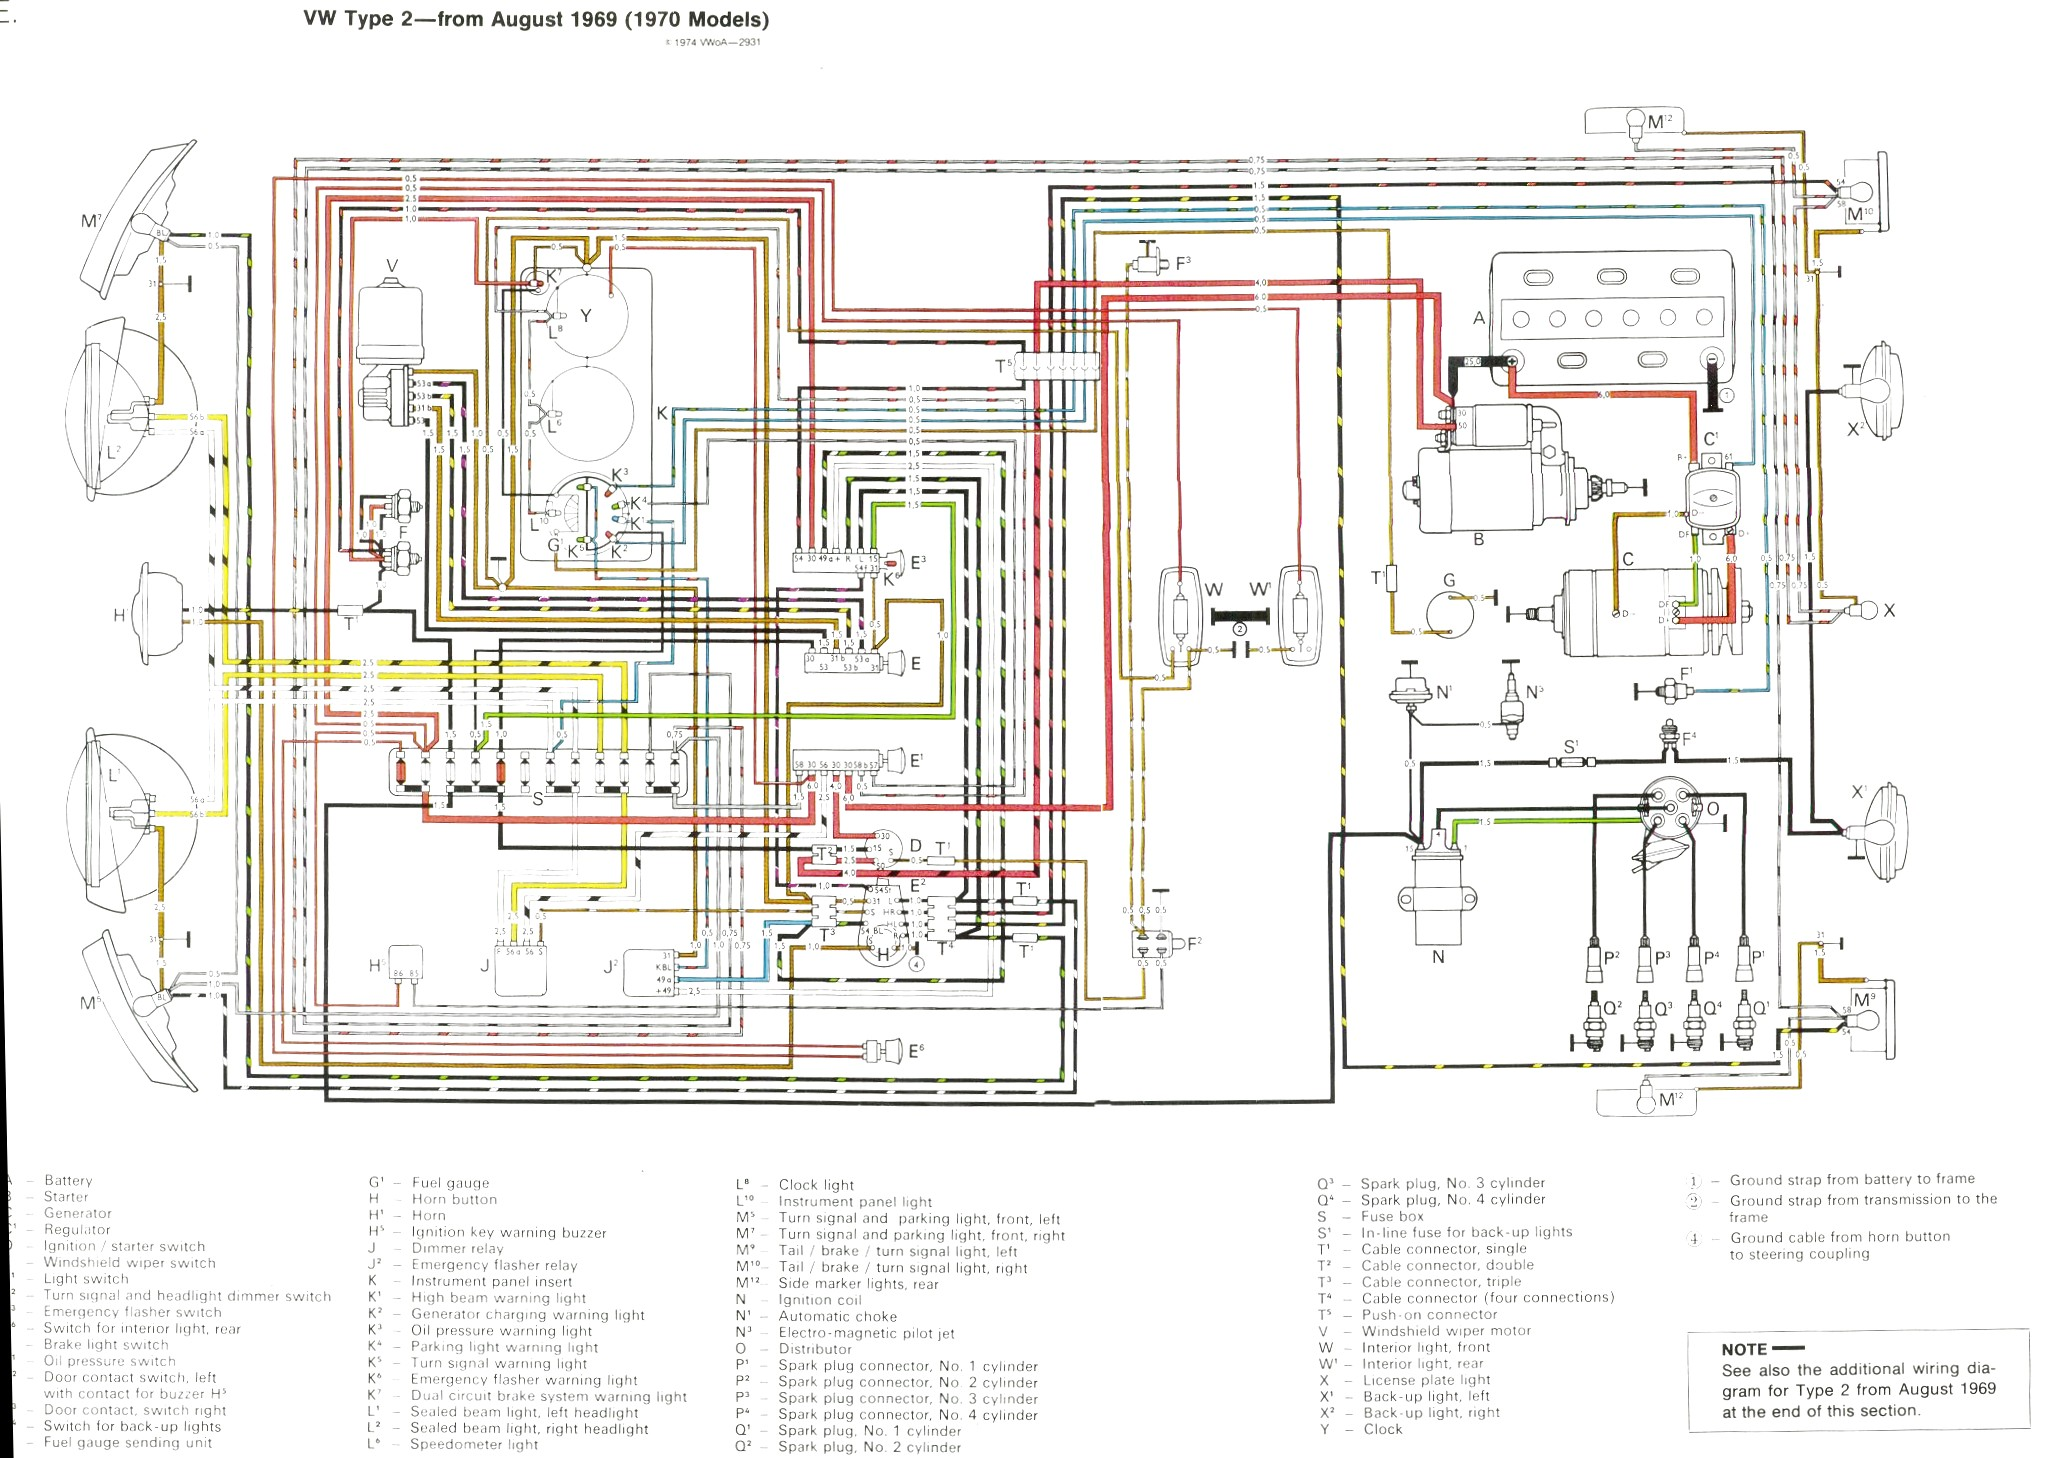 bus 69 70 vintagebus com vw bus (and other) wiring diagrams Wiring Harness Diagram at creativeand.co